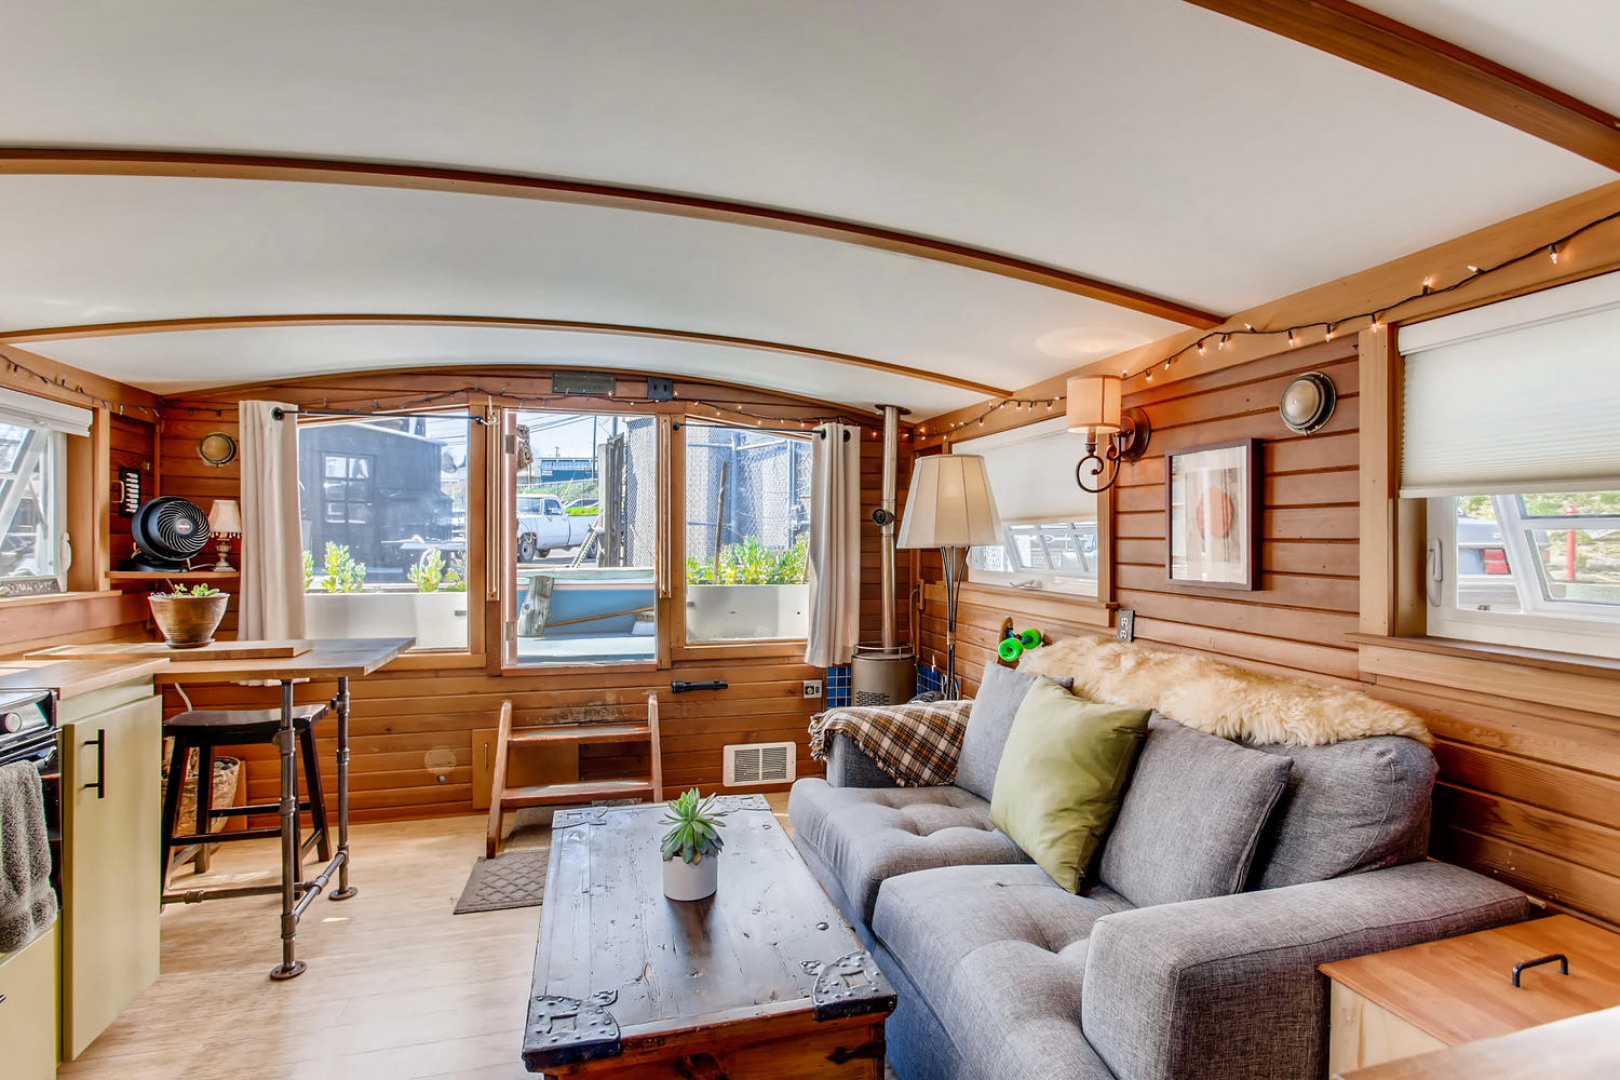 """Orca"" is a small but mighty houseboat on Lake Union, coming in at 240 square feet (336 sq. ft. total lot size). Built in 1982, Orca has a cozy layout featuring an arched ceiling, deck, kitchen and a skylight. This houseboat also comes with the opportunity to expand by adding a second story bedroom with deck (plans have already been drawn up). This houseboat is listed by Alan Braden at $199,000,{&nbsp;}<a  href=""https://alanbraden.rsir.com/homes-for-sale/2401-n-northlake-wy-d1-seattle-wa-98103-1607200-952340/"" target=""_blank"" title=""https://alanbraden.rsir.com/homes-for-sale/2401-n-northlake-wy-d1-seattle-wa-98103-1607200-952340/"">more info online.</a>{&nbsp;}(Image:{&nbsp;}<a  href=""https://www.instagram.com/apnwphotographer/"" target=""_blank"" title=""https://www.instagram.com/apnwphotographer/"">Nicolas Gerlach @apnwphotographer{&nbsp;}</a>/{&nbsp;}<a  href=""https://www.virtuance.com/"" target=""_blank"" title=""https://www.virtuance.com/"">Virtuance</a>)"